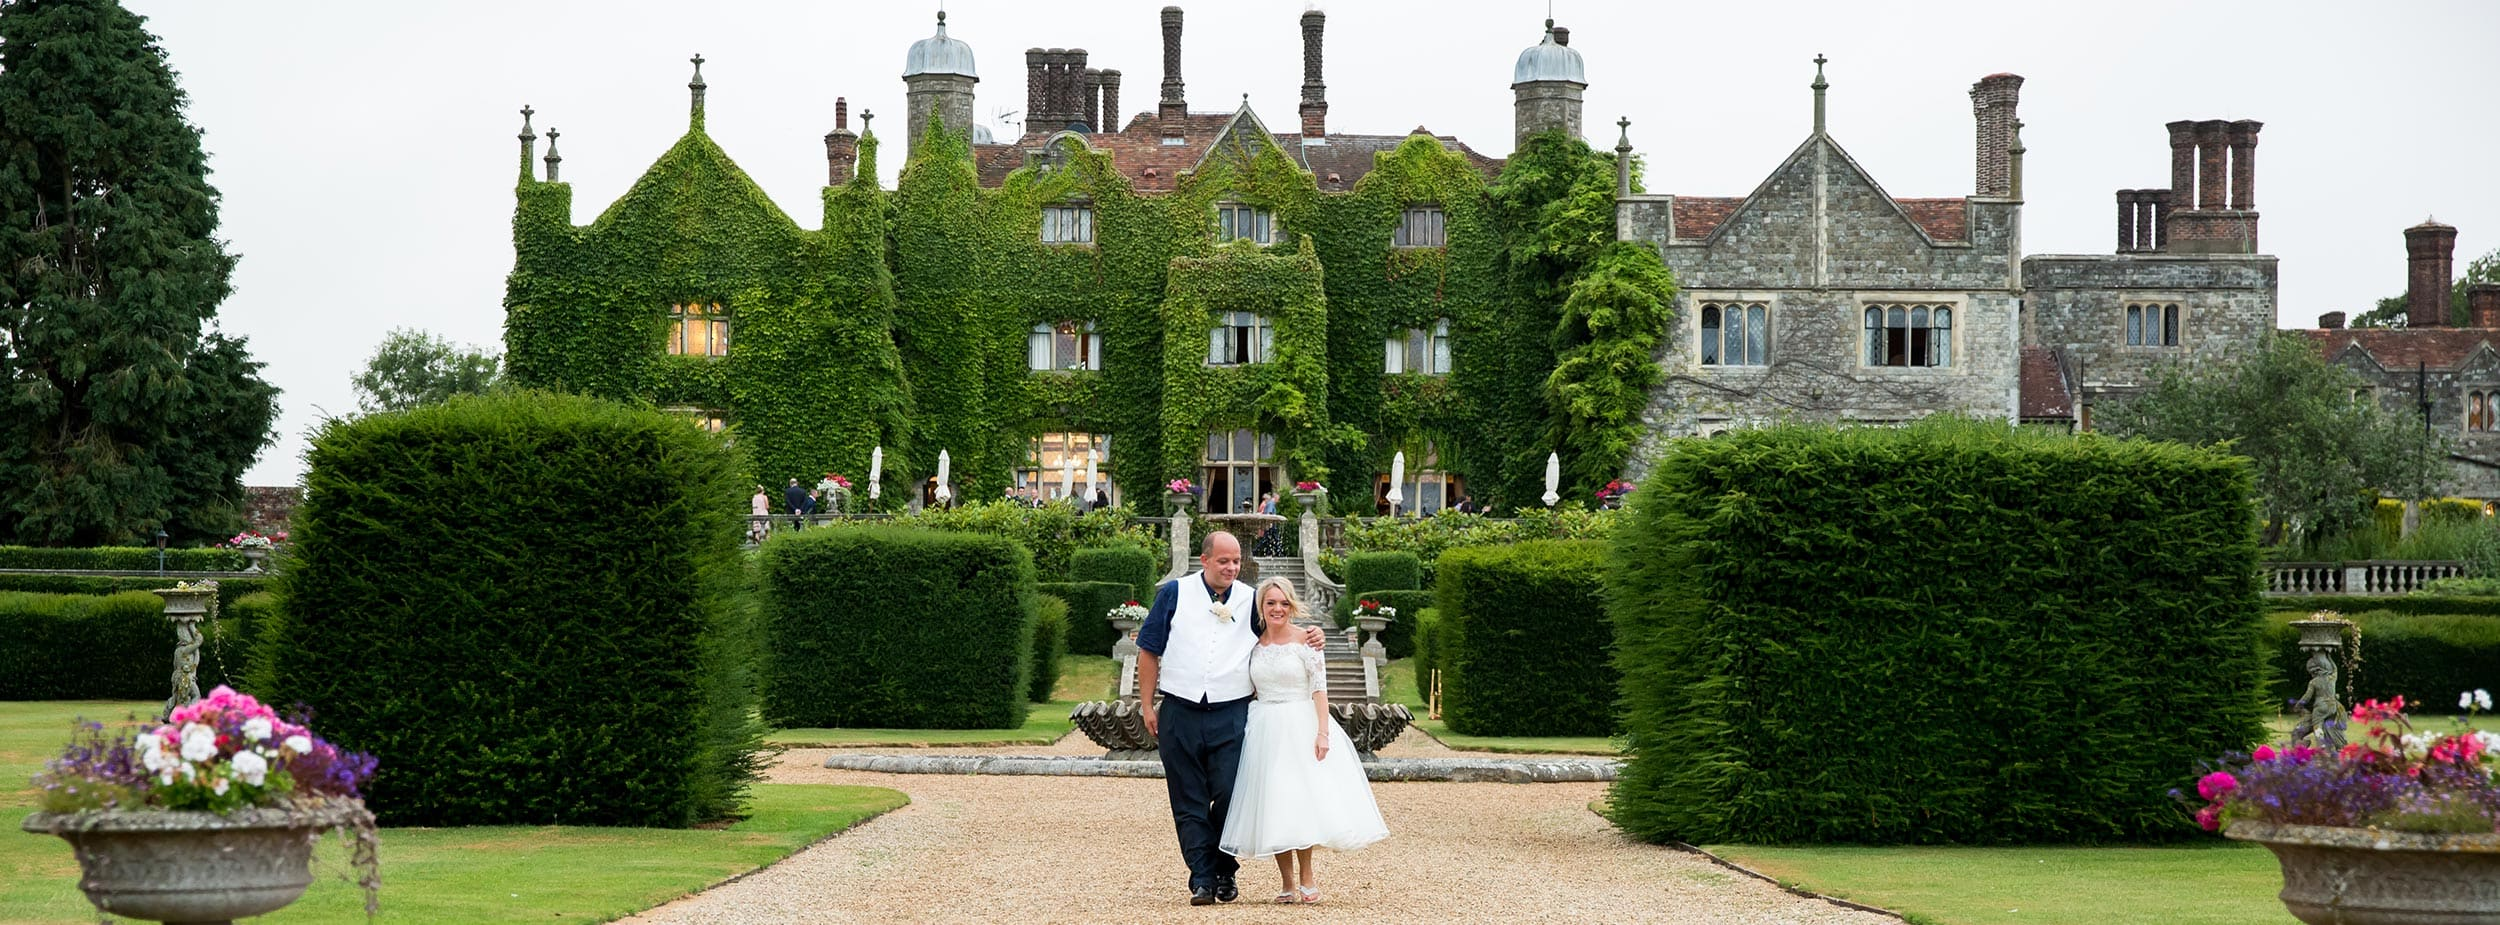 Eastwell Manor Wedding Photographer Kent